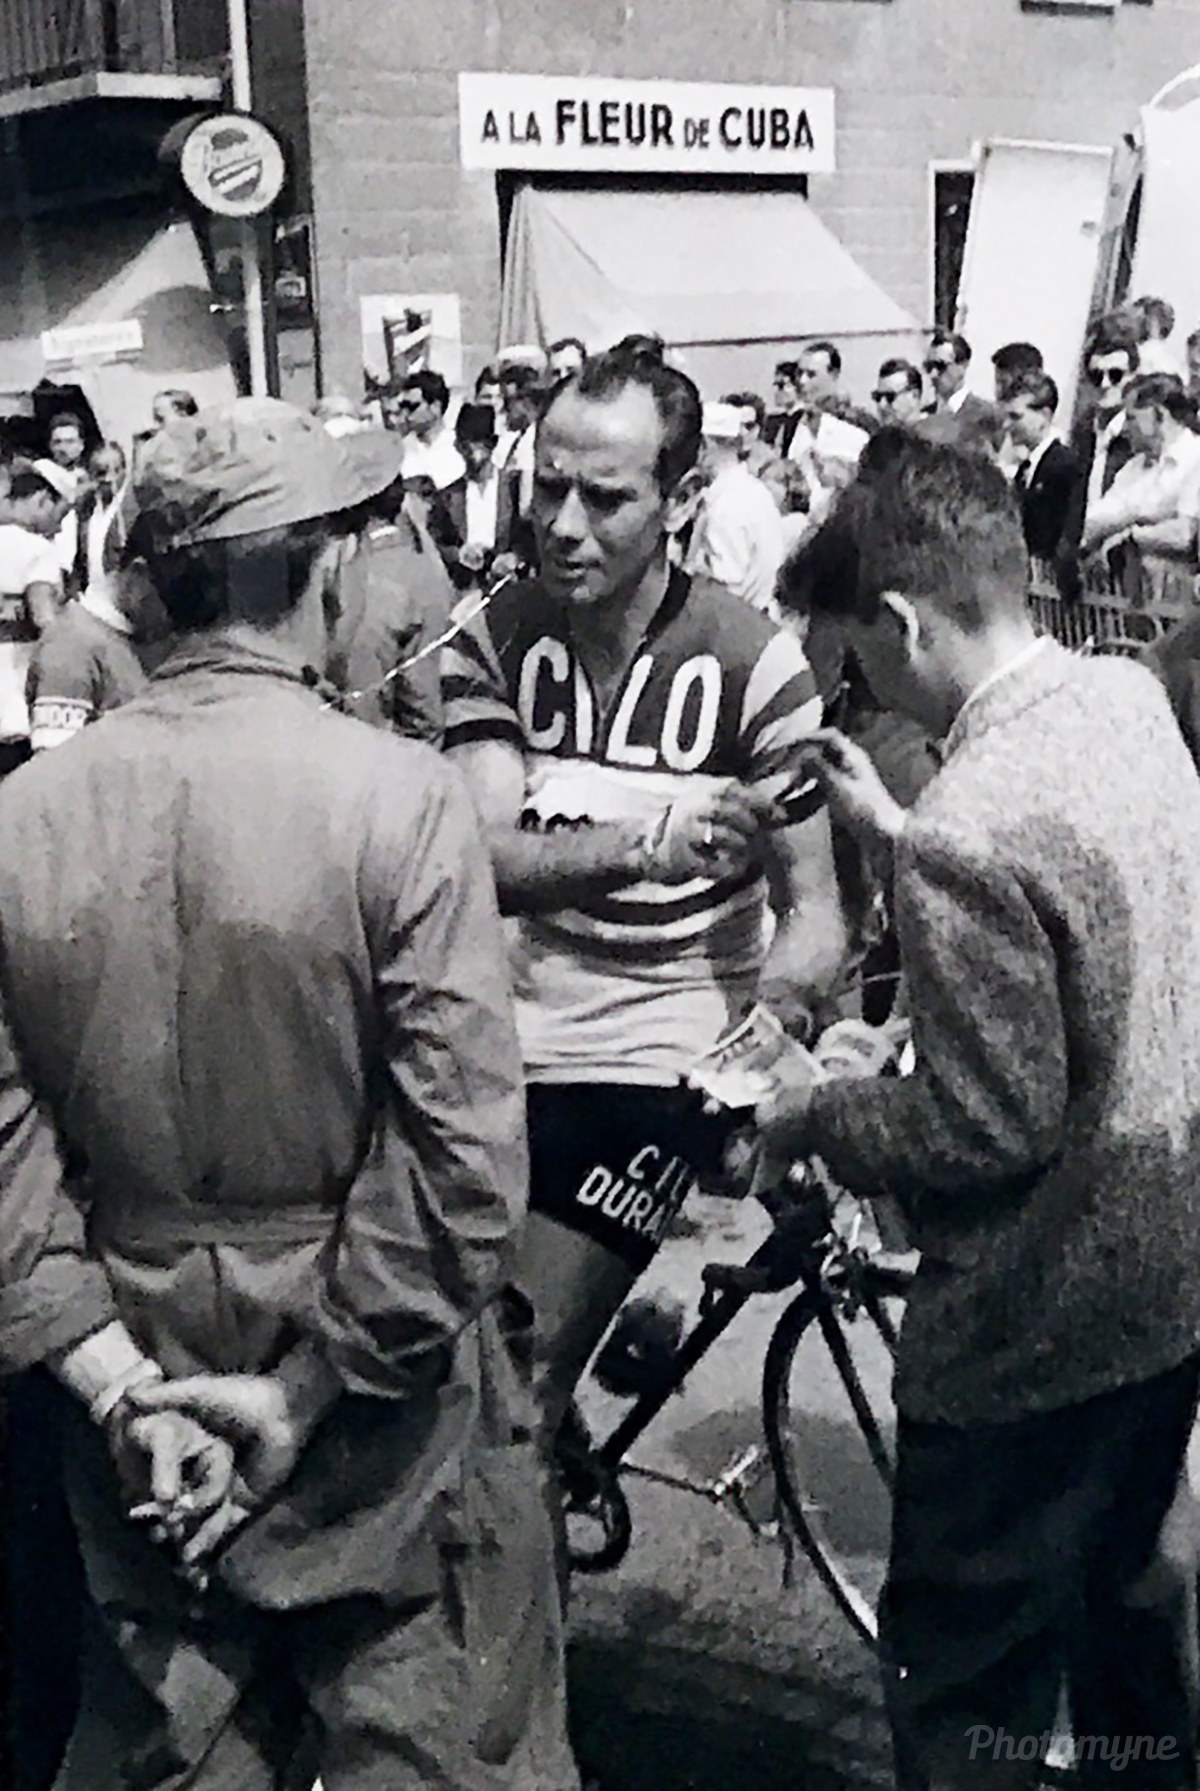 Ferdi Kubler cycliste professionnel entre 1940 et 1957 (Ferdi Kubler professional cyclist between 1940 and 1957). Switzerland 1957